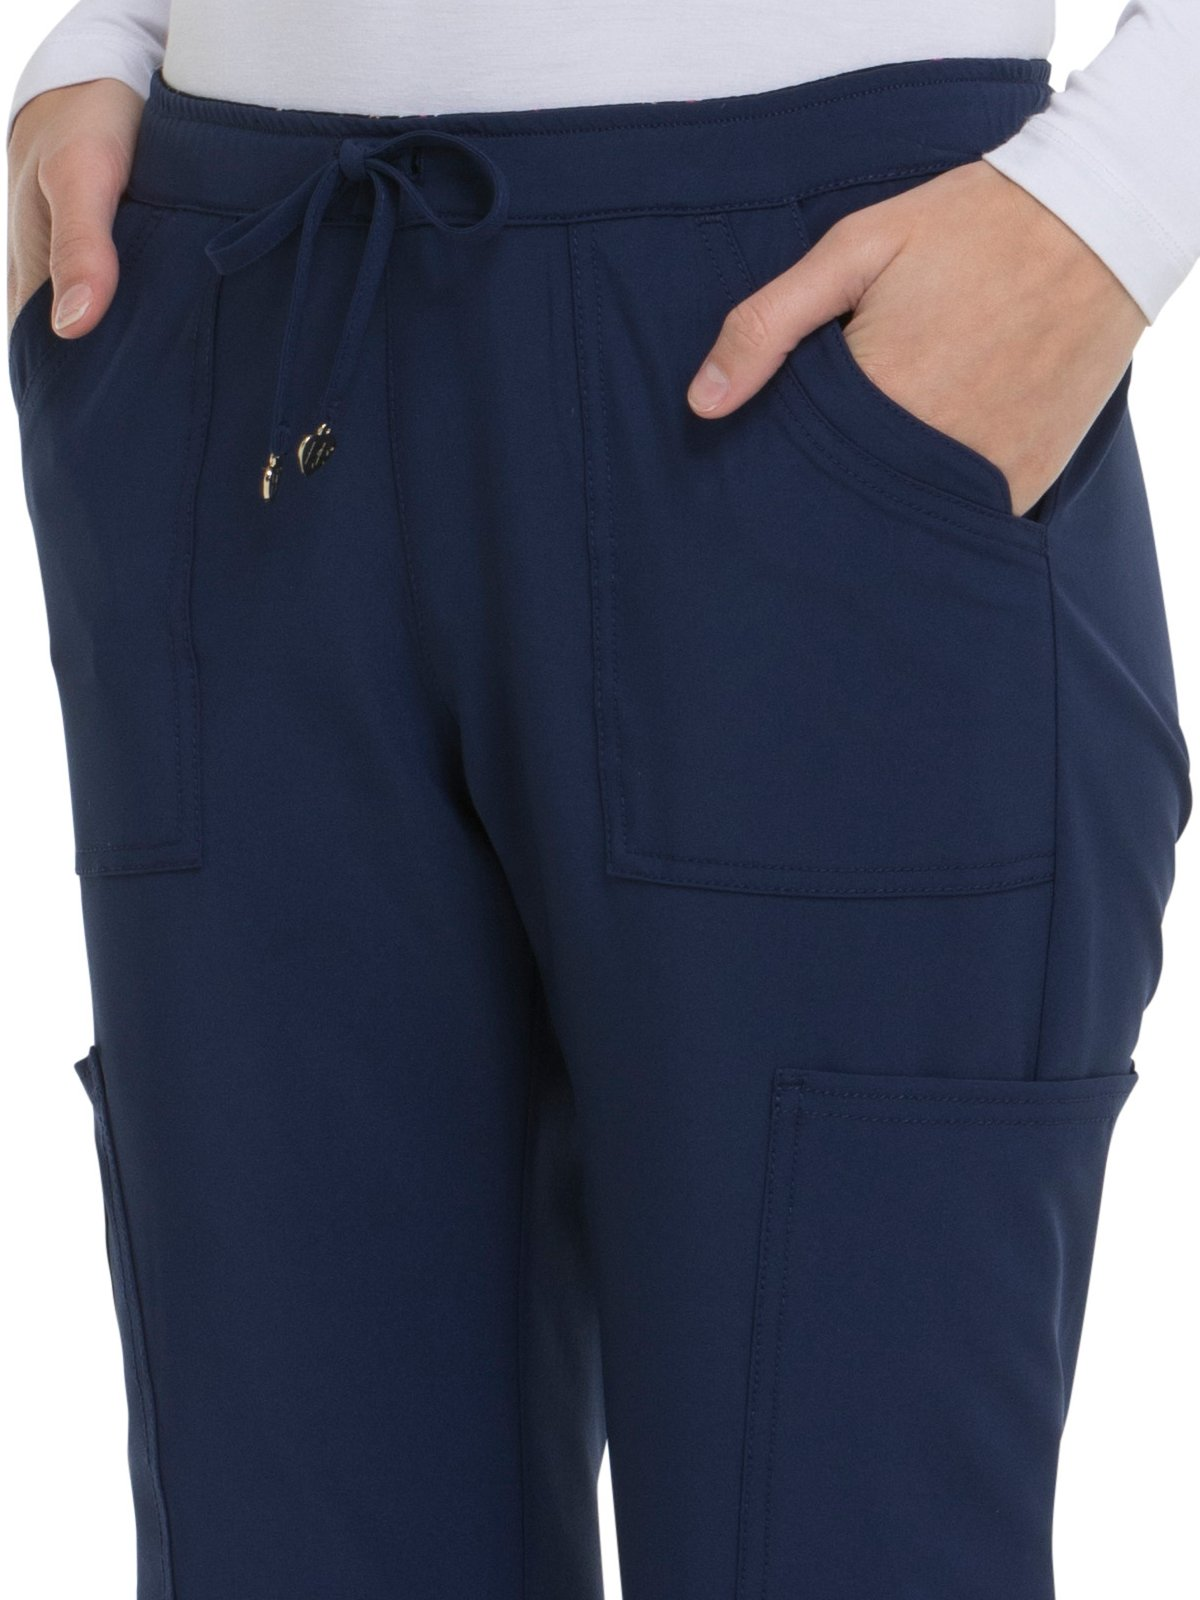 HeartSoul Love Always by Women's Charmed Low Rise Drawstring Cargo Scrub Pant Small Petite Navy by HeartSoul (Image #3)